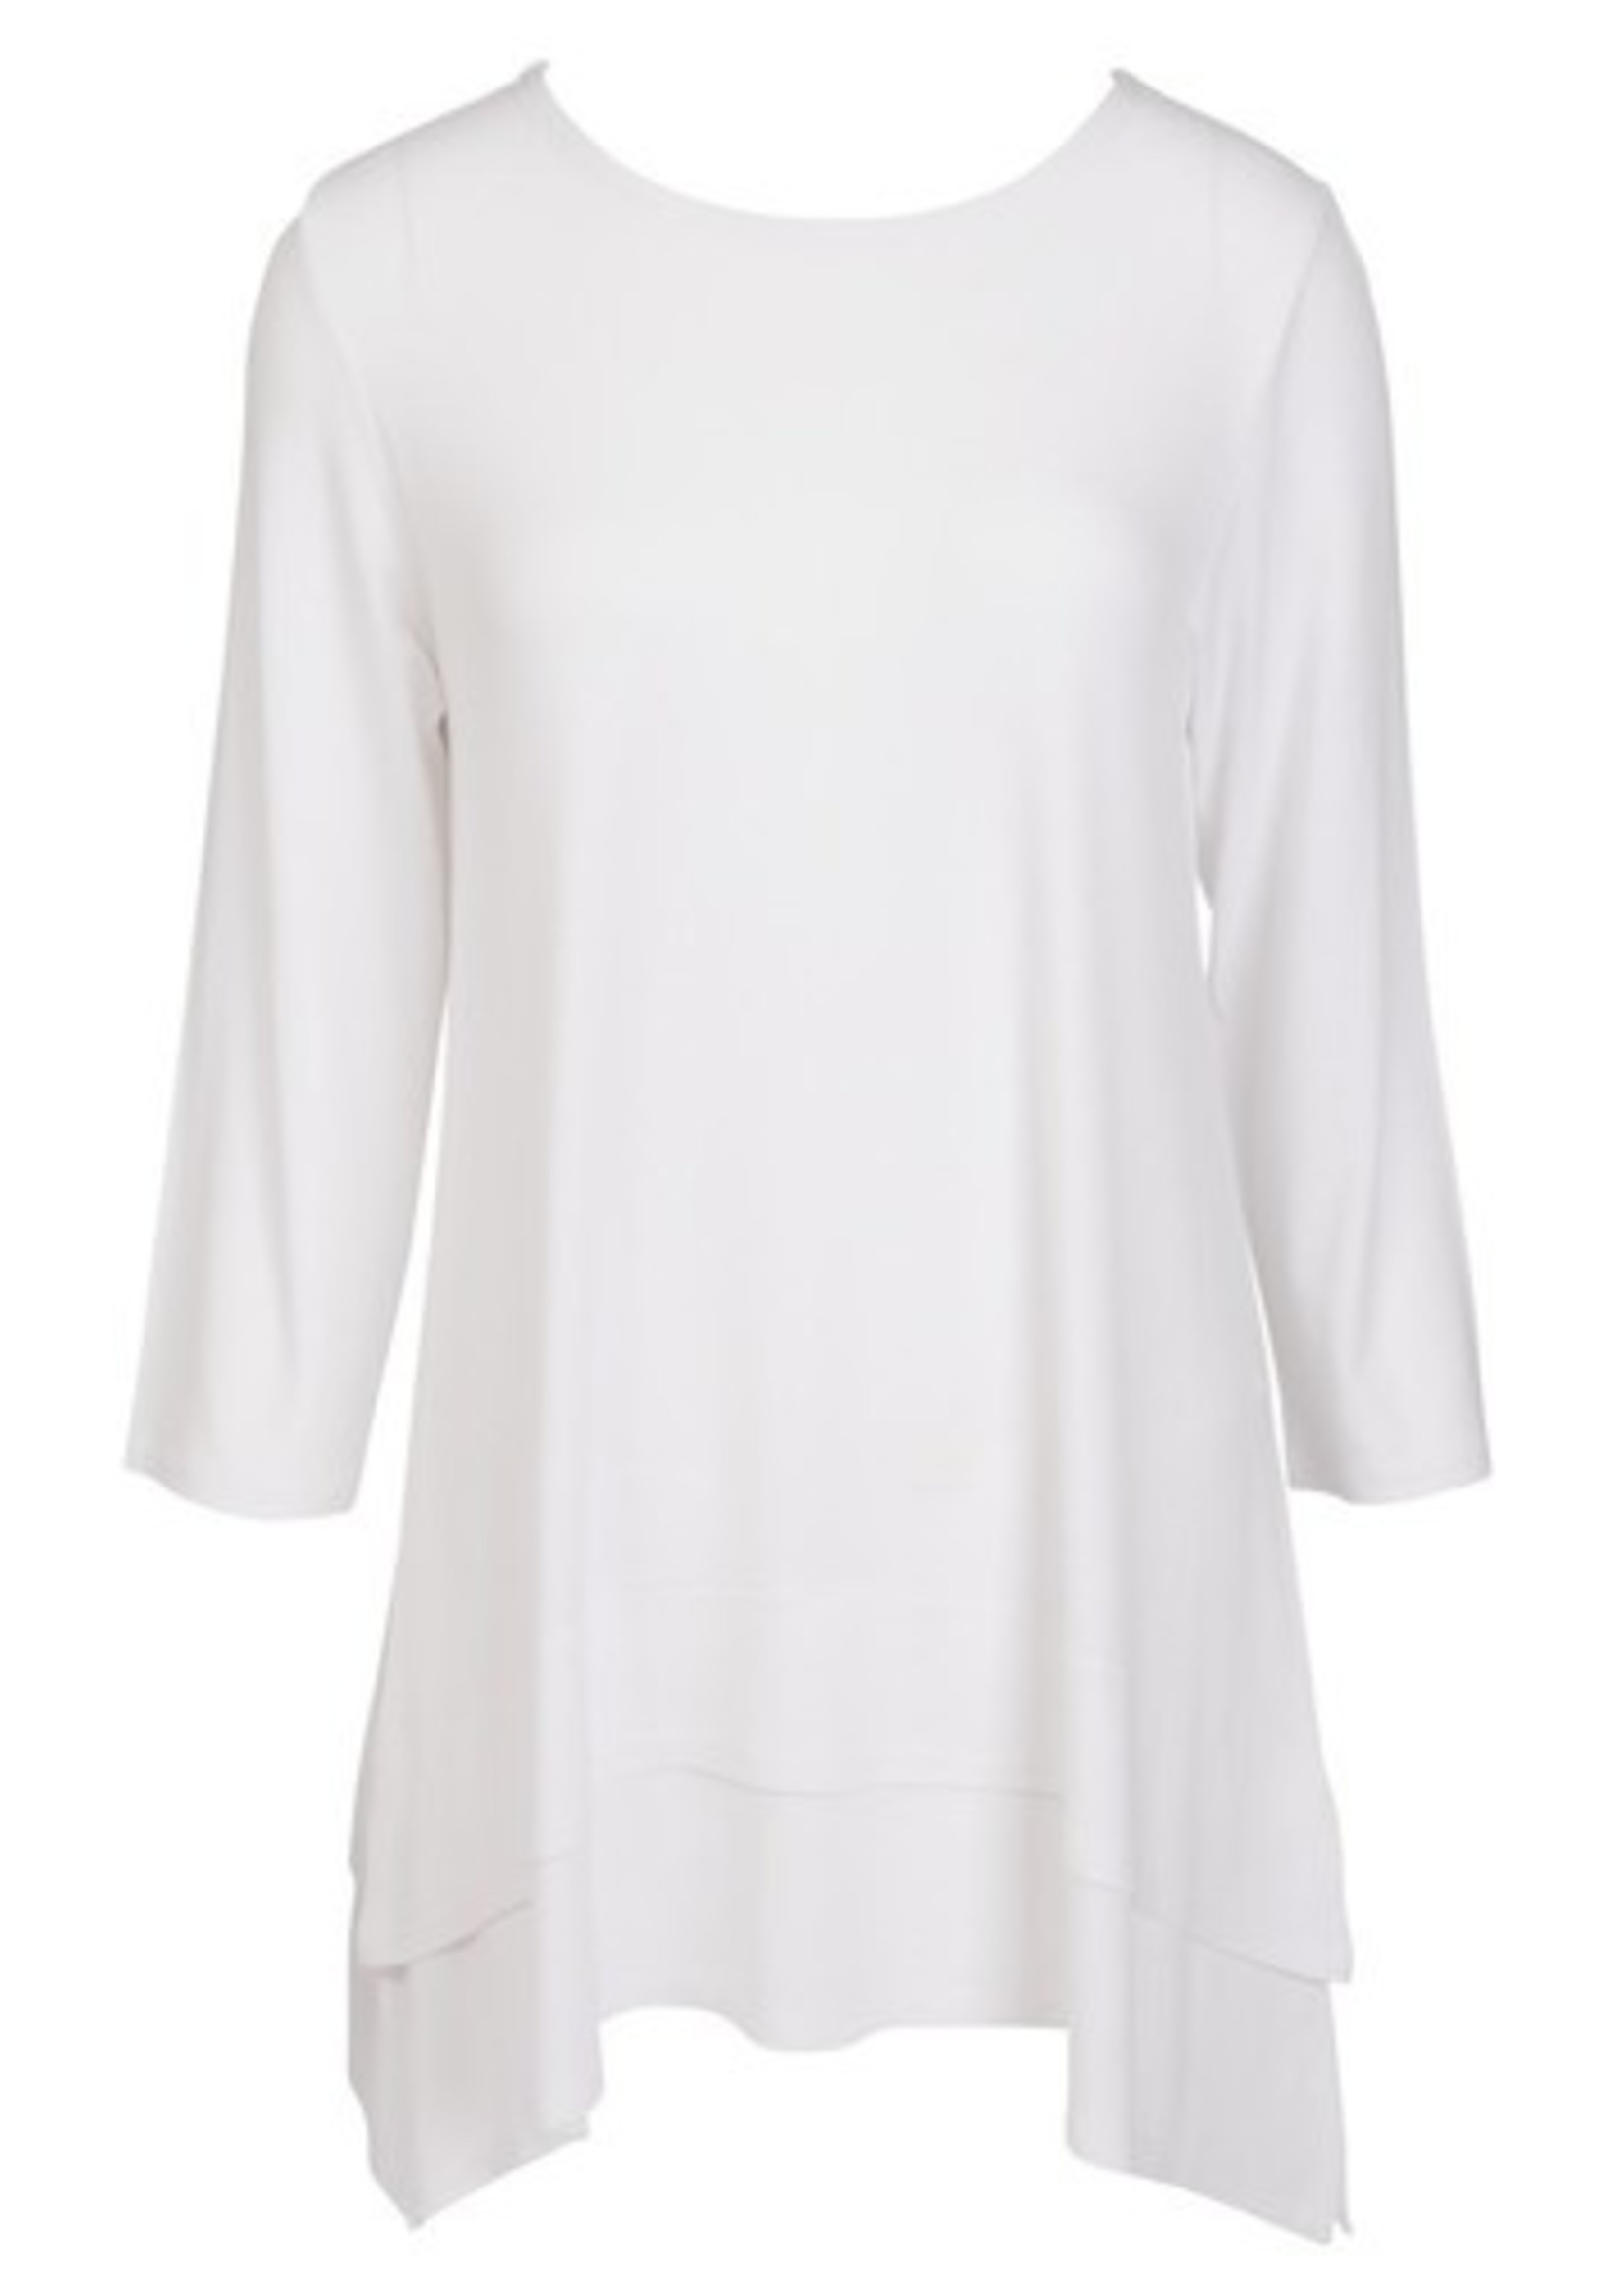 Double Layer Tunic - White - SM/Med